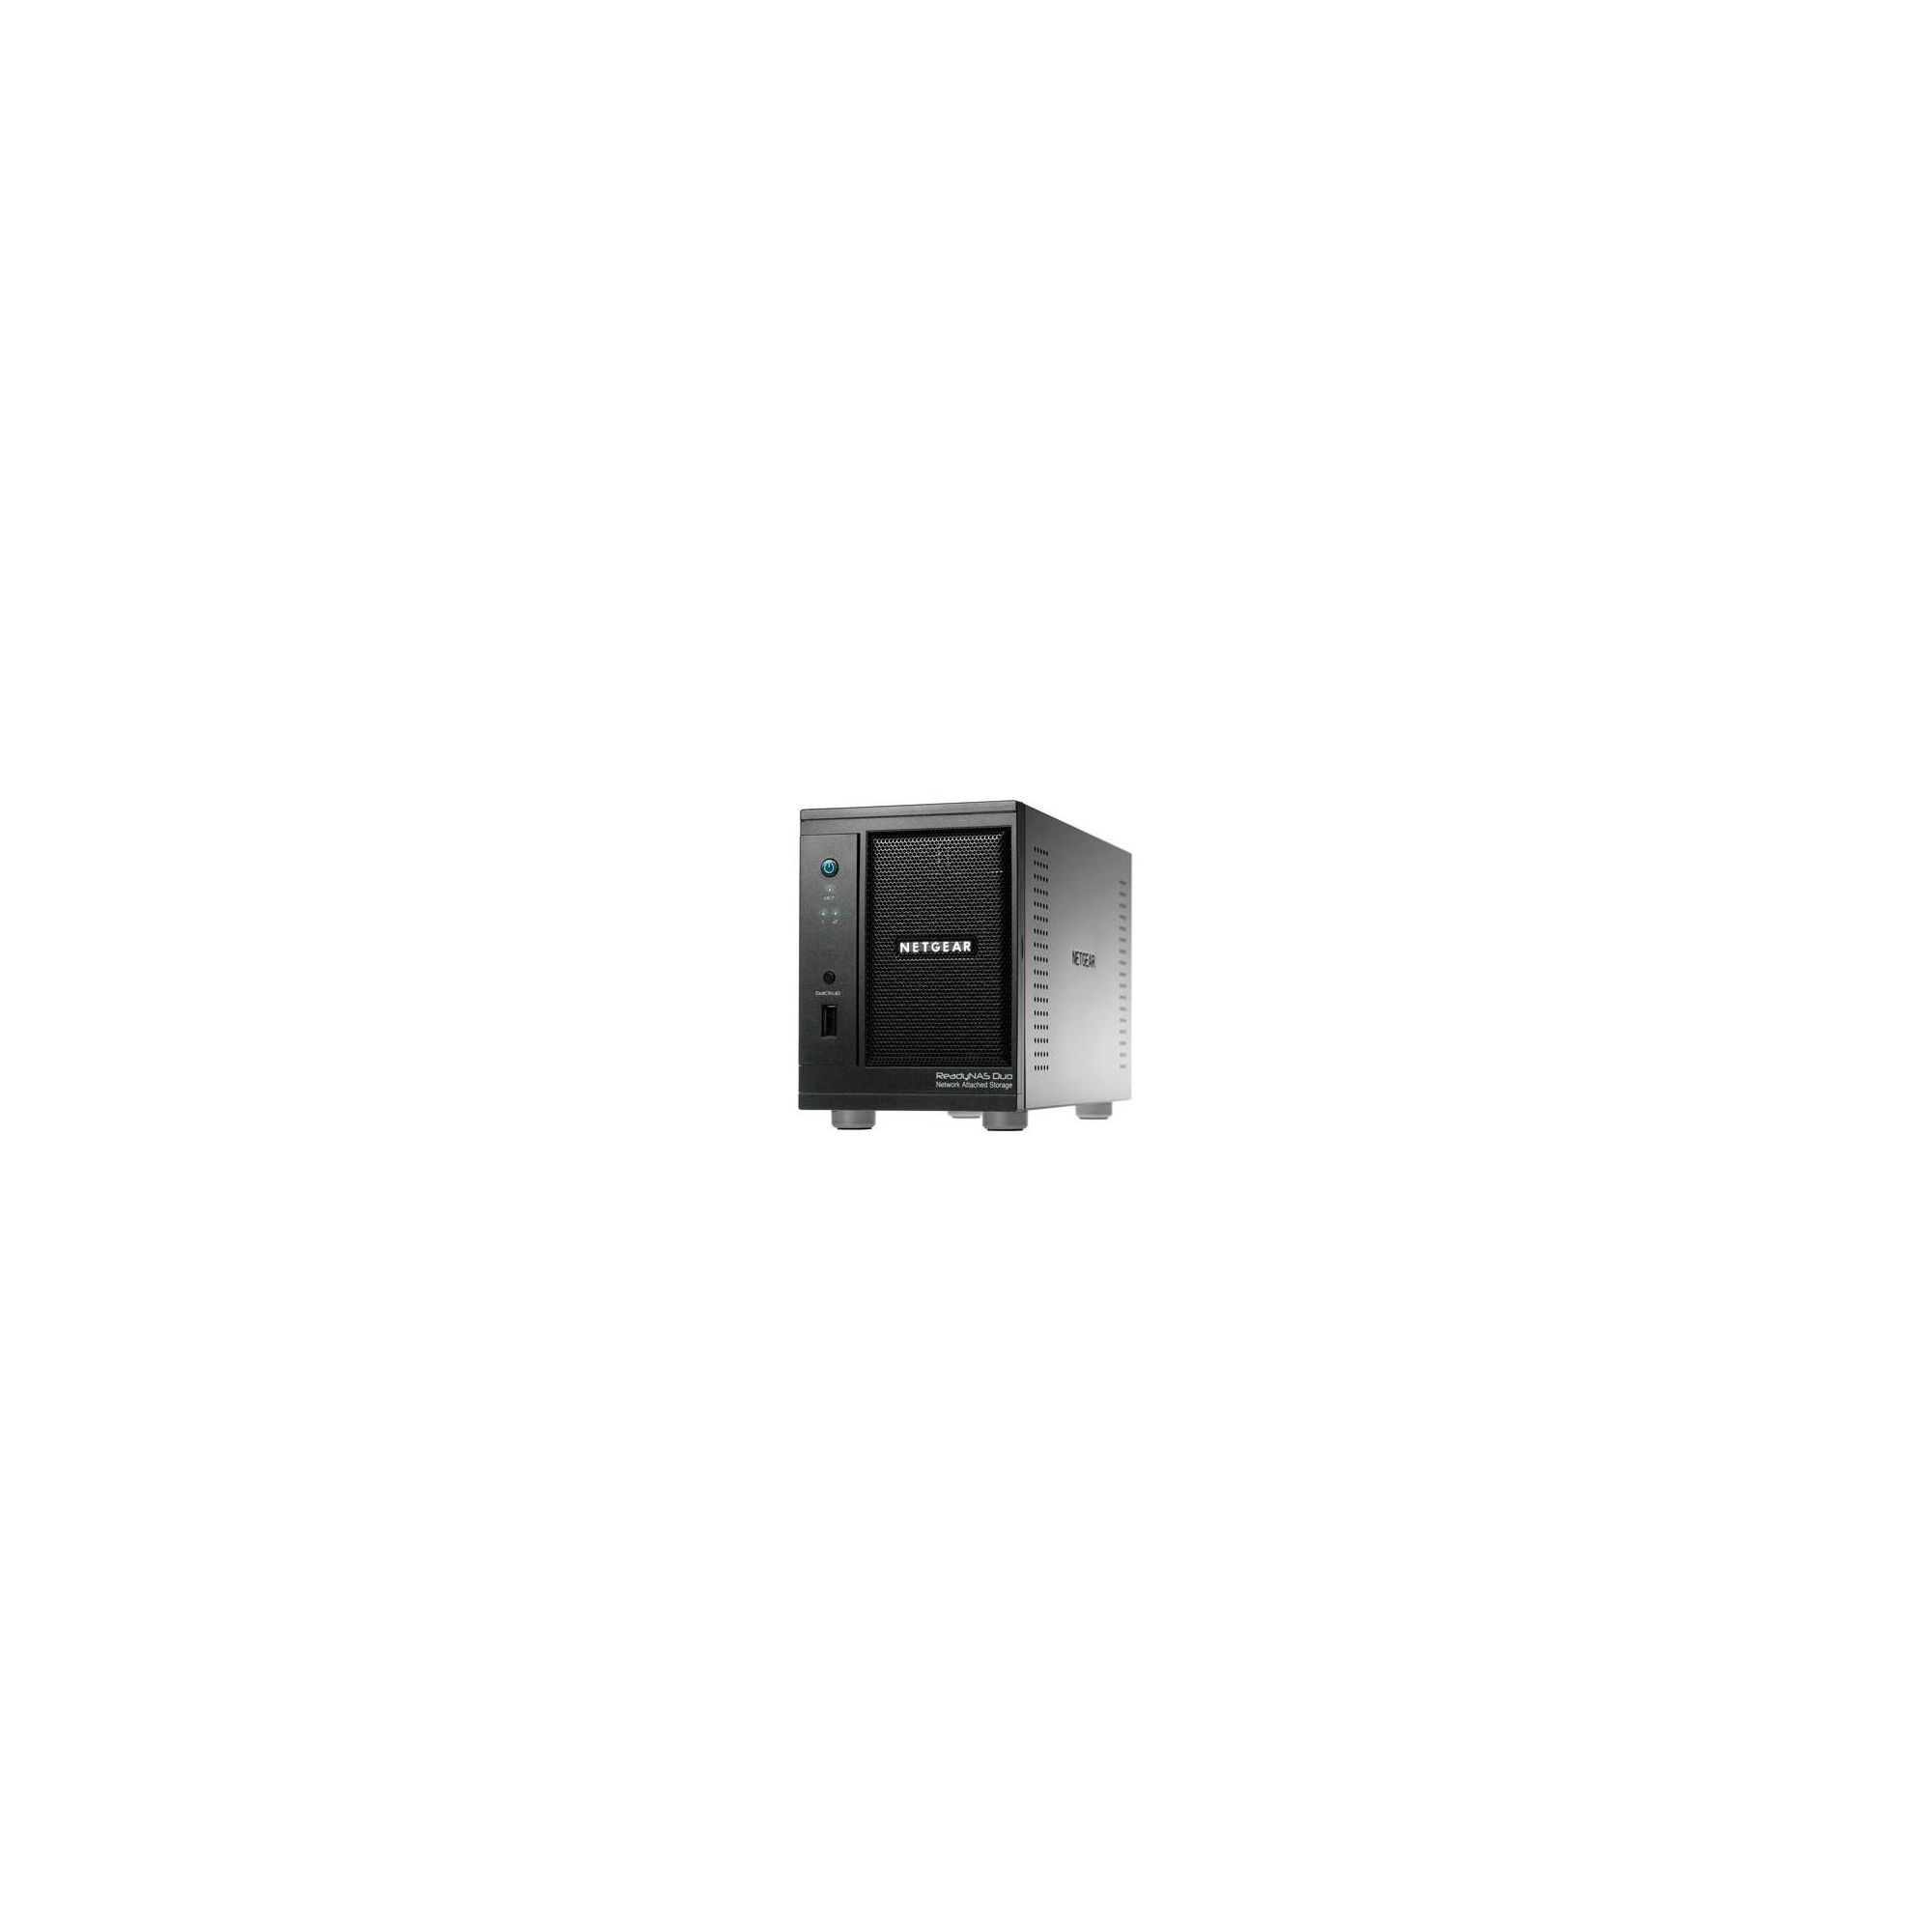 Netgear ReadyNAS Duo RND2210 (2x1000GB) Desktop Network Storage CBID:1471985 at Tescos Direct